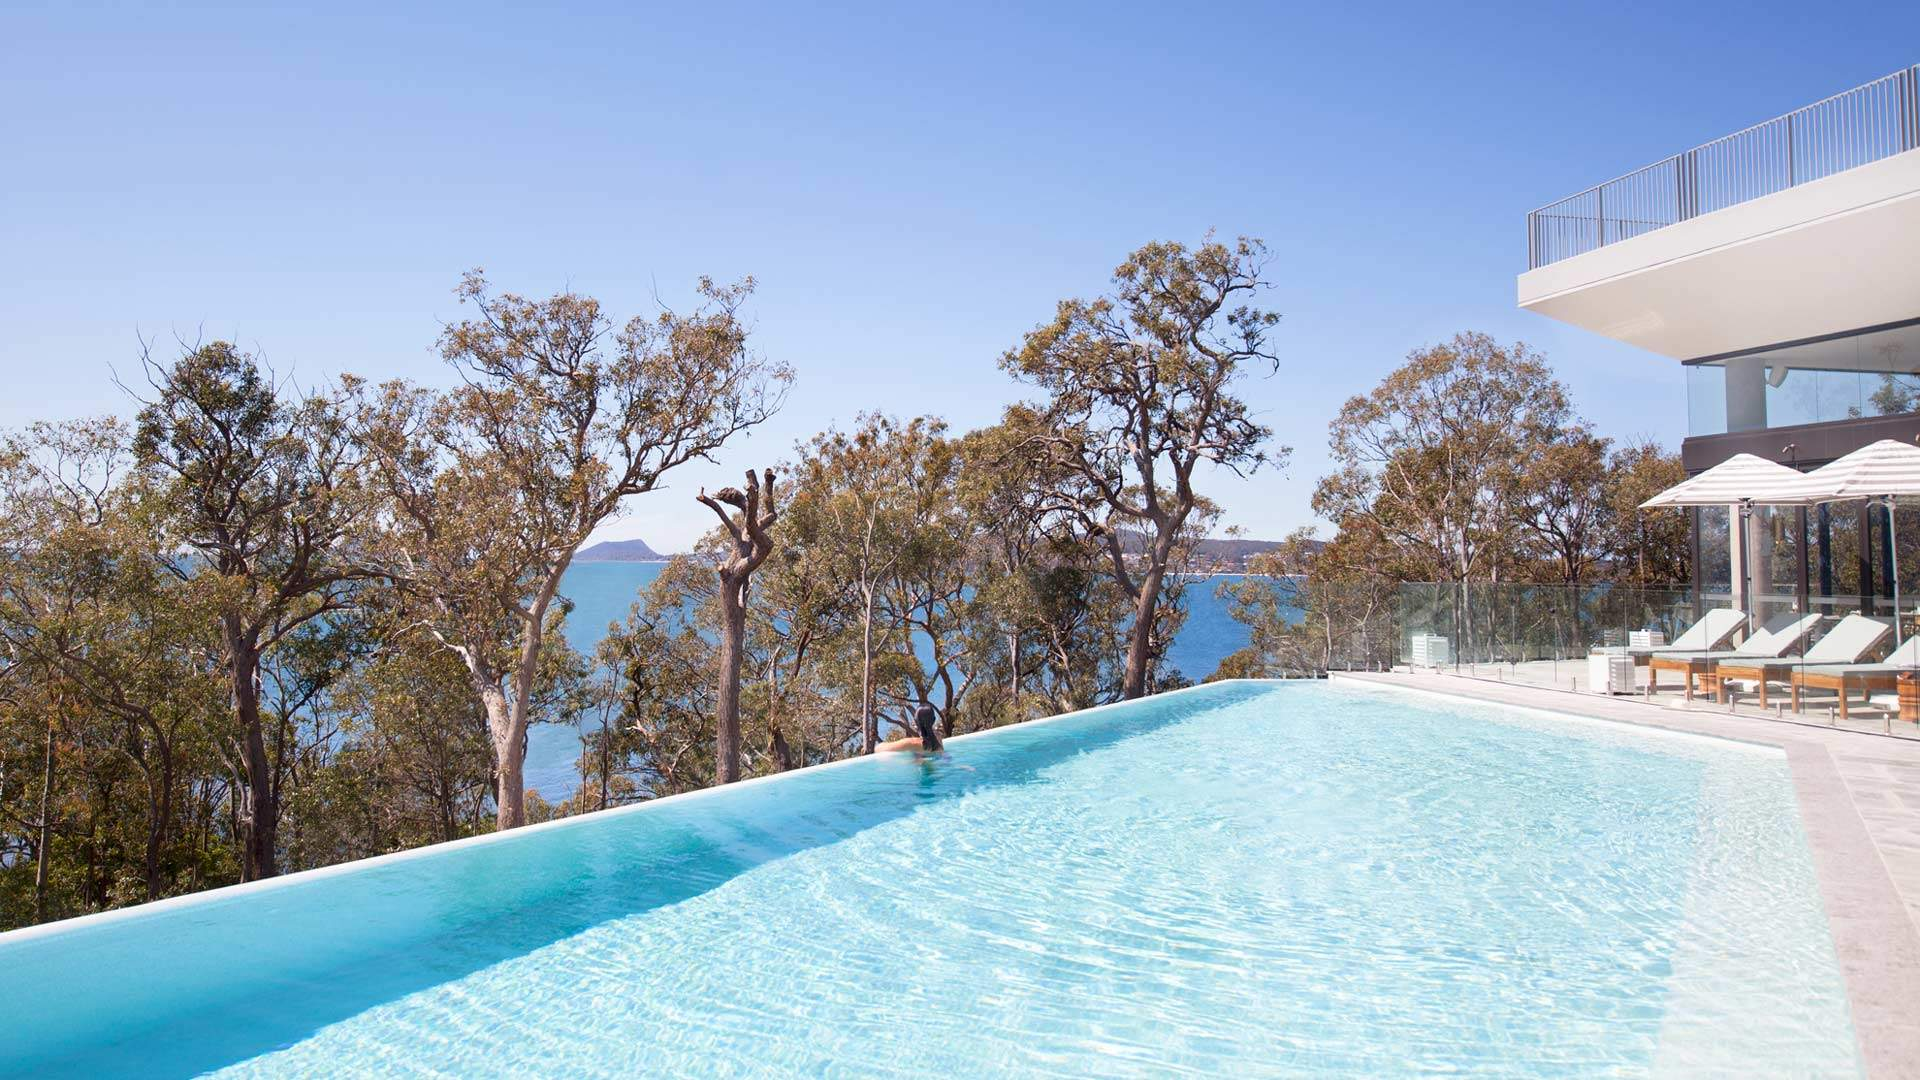 How to Spend an Indulgent Weekend Away In Port Stephens